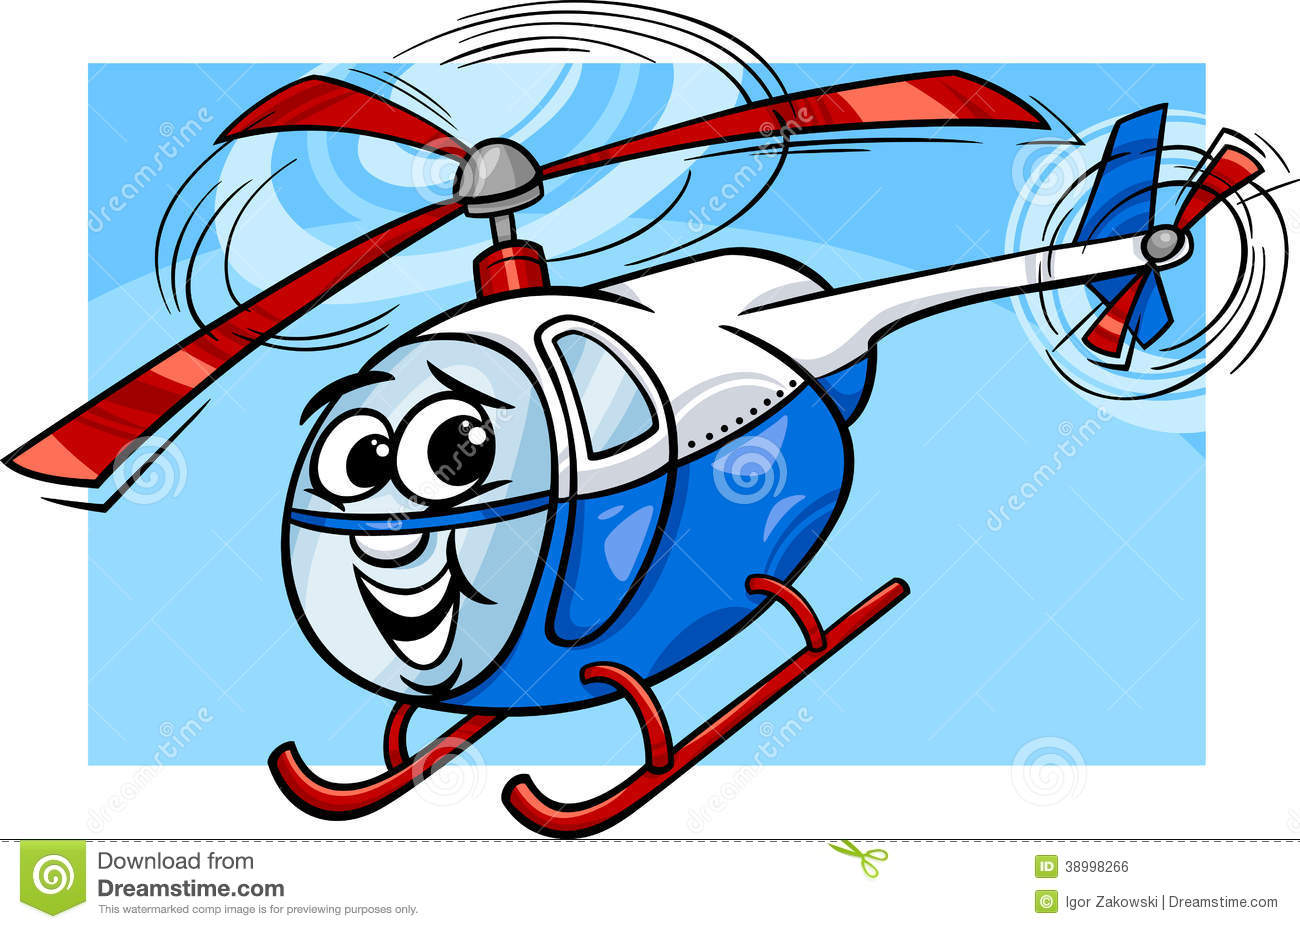 toy helicopter for kids with Royalty Free Stock Image Helicopter Chopper Cartoon Illustration Funny  Ic Mascot Character Image38998266 on Flight Paper Airplanes together with Lego Jurassic World Debloquea Personajes Dinosaurios Mejoras furthermore B01G824U9A additionally Royalty Free Stock Image Helicopter Chopper Cartoon Illustration Funny  ic Mascot Character Image38998266 moreover Go Go Smart Wheels   Police Station Playset.